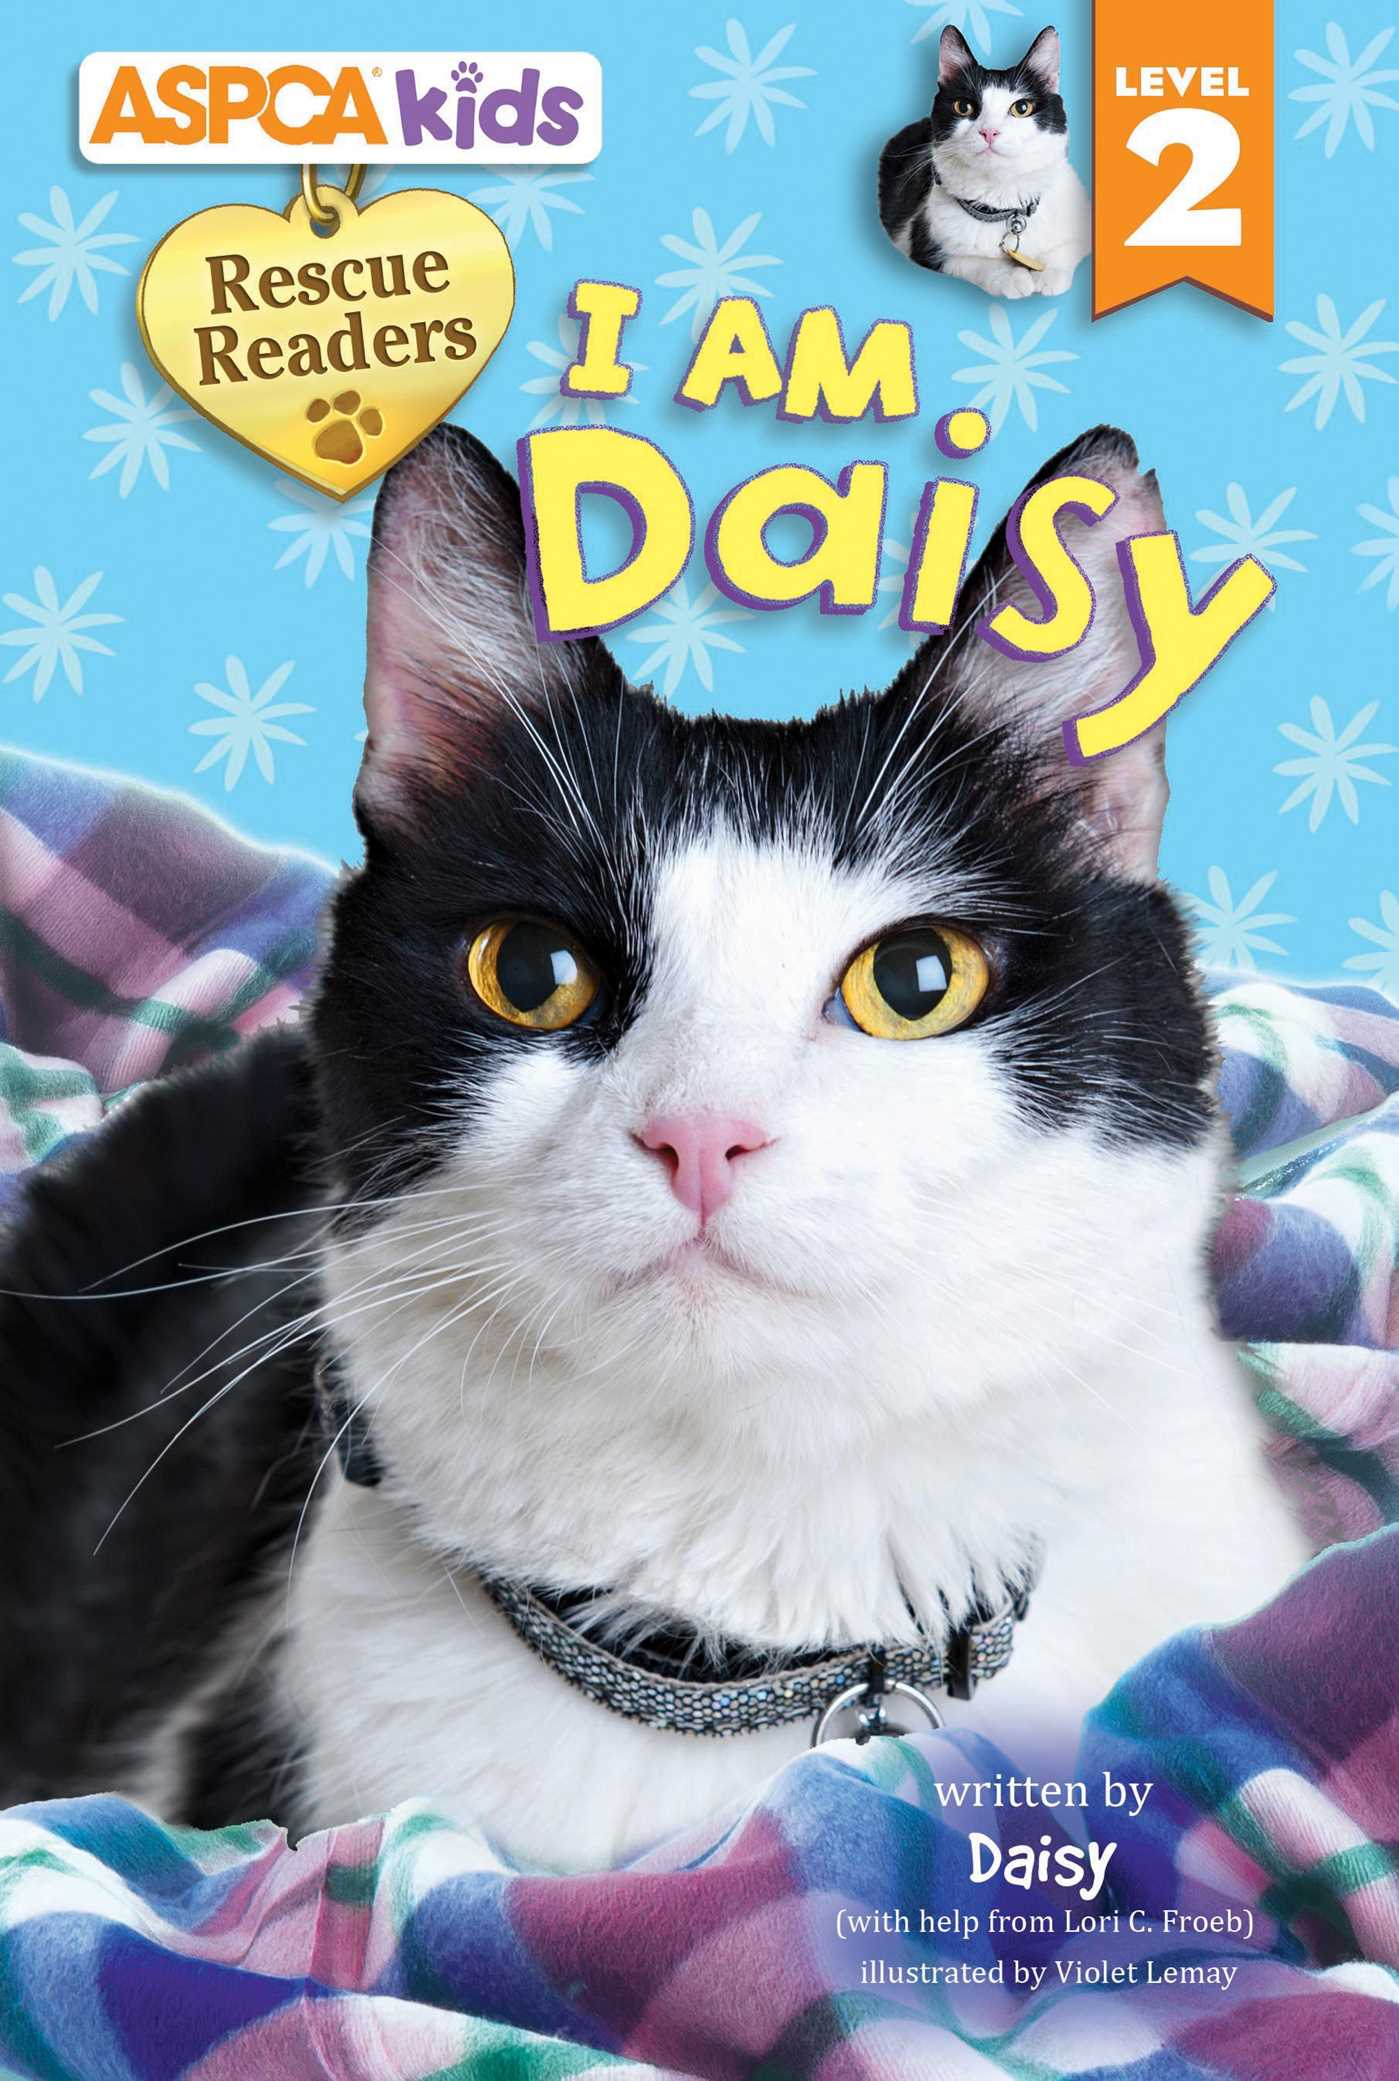 Aspca-kids-rescue-readers-i-am-daisy-9780794433116_hr